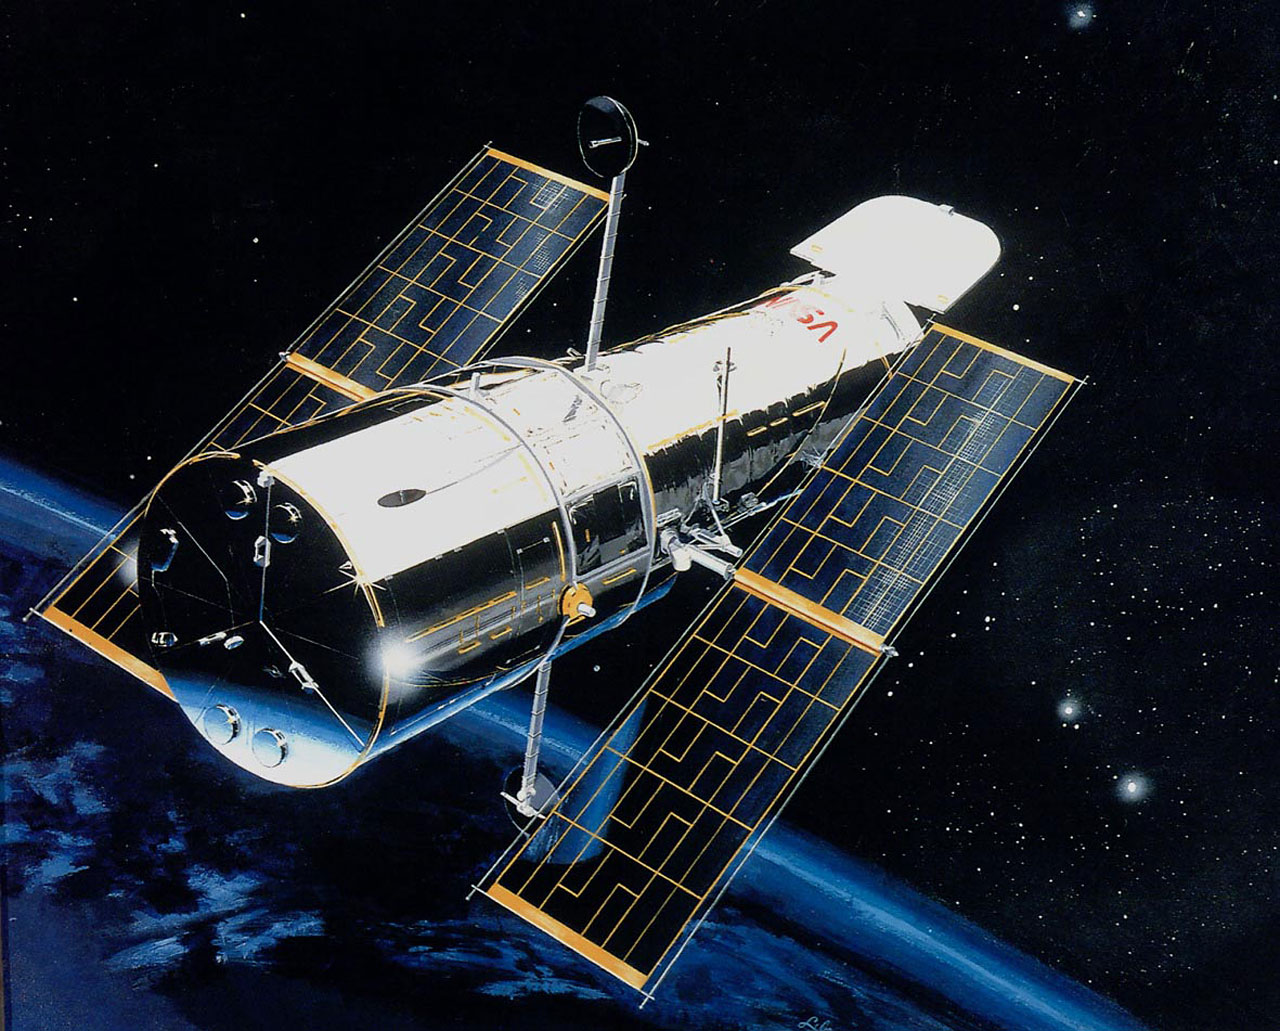 Hubble Telescope …. Launched 24 years ago in April 2014 ...